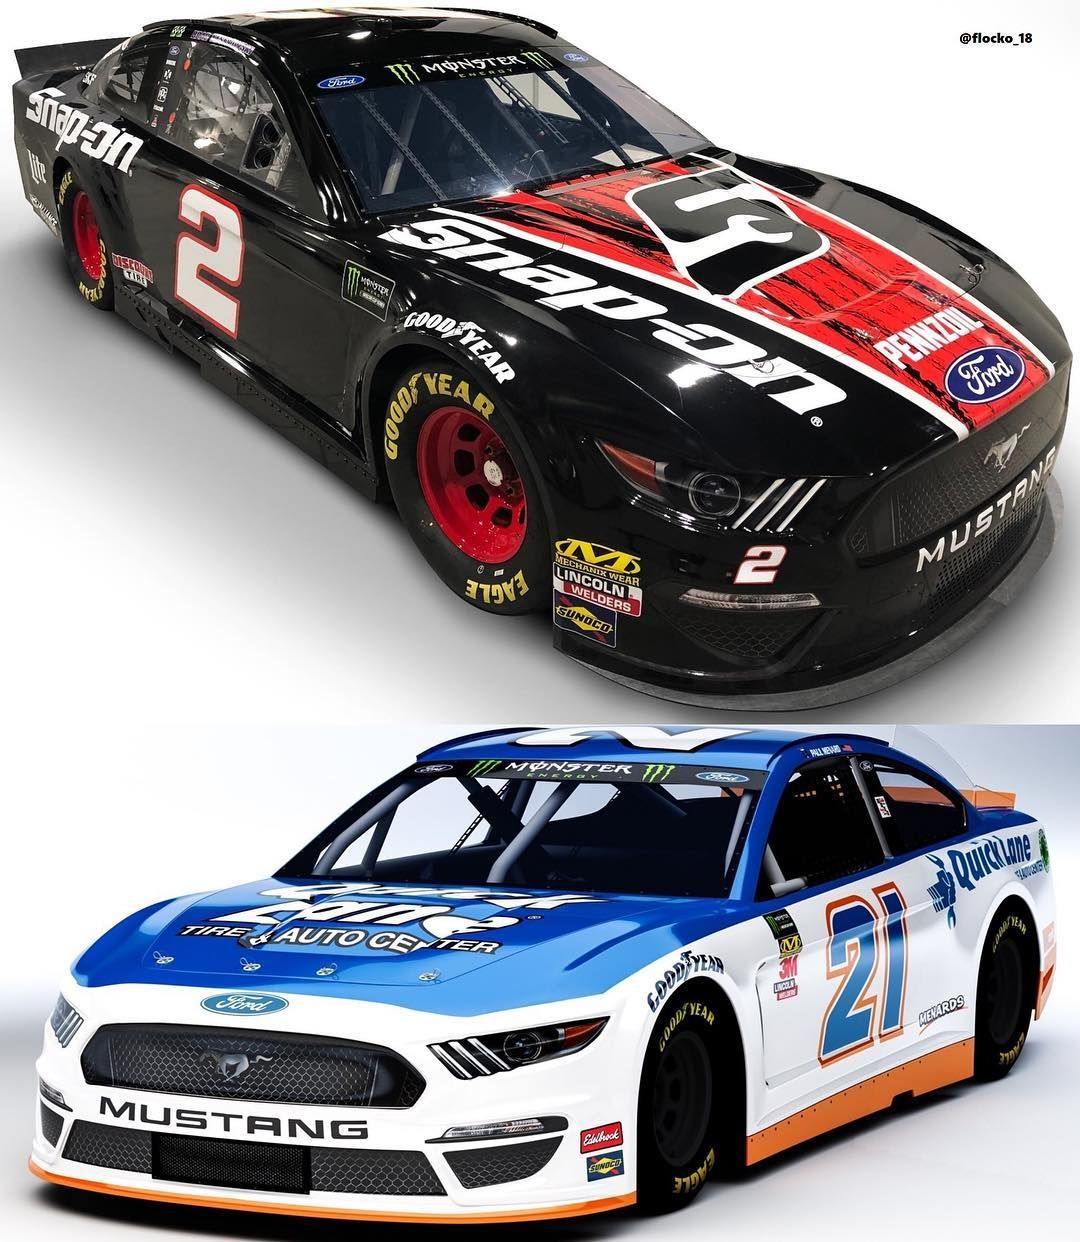 Lewis Flockton On Instagram Here S Brad Keselowski S No 2 Snap On Penske Ford Mustang Scheme And Paul Menards No 21 Quicklane Ford Scheme For Talladega Thi